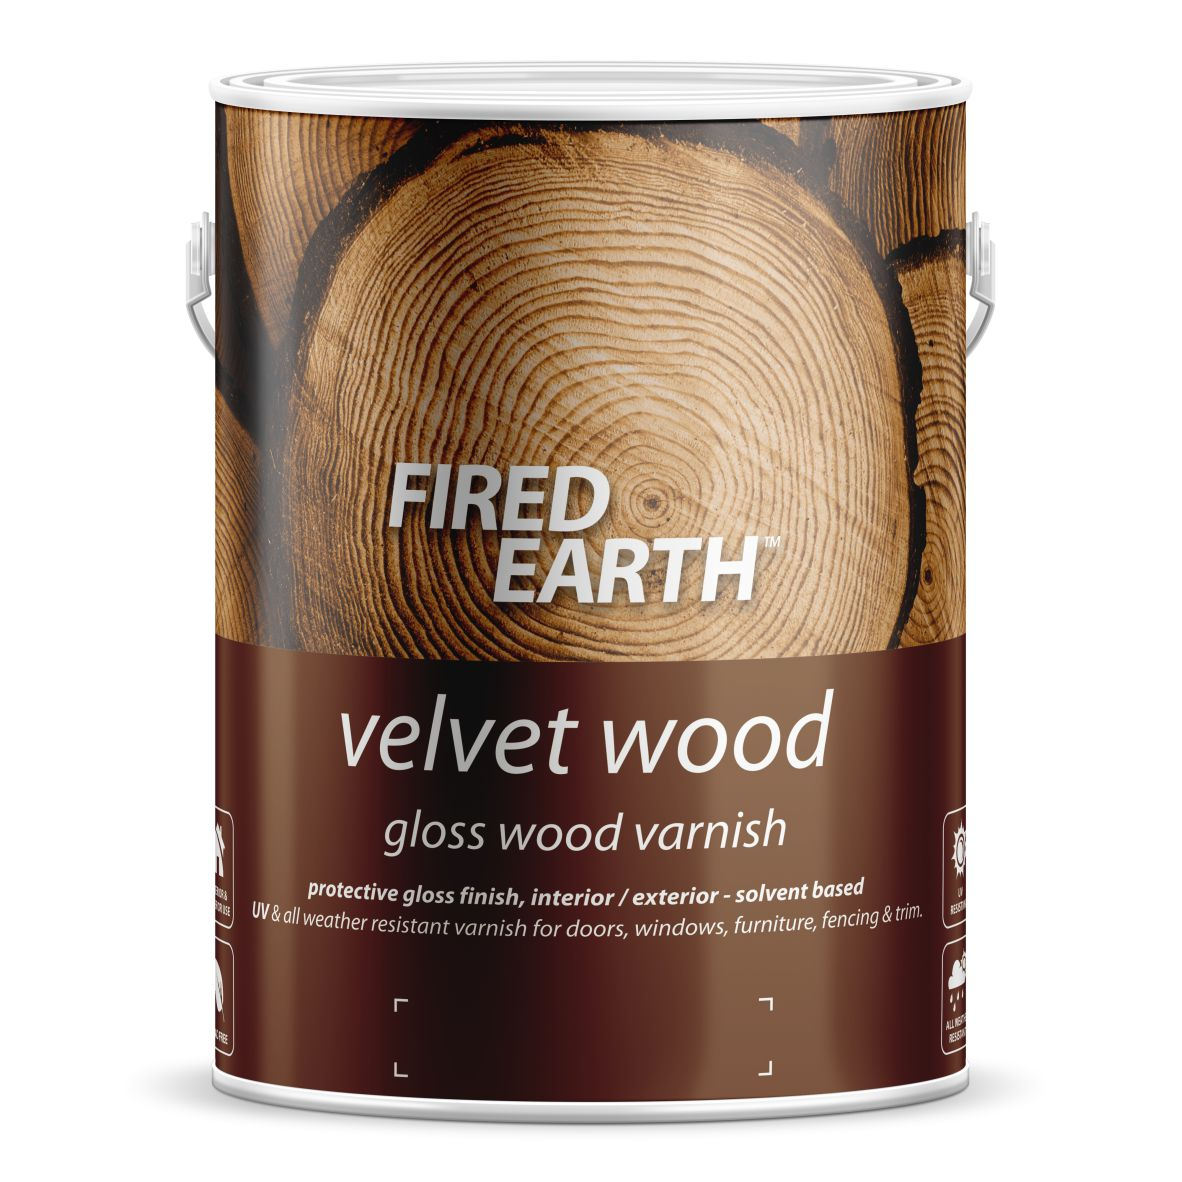 FE Wood Velvet gloss wood varnish.jpg